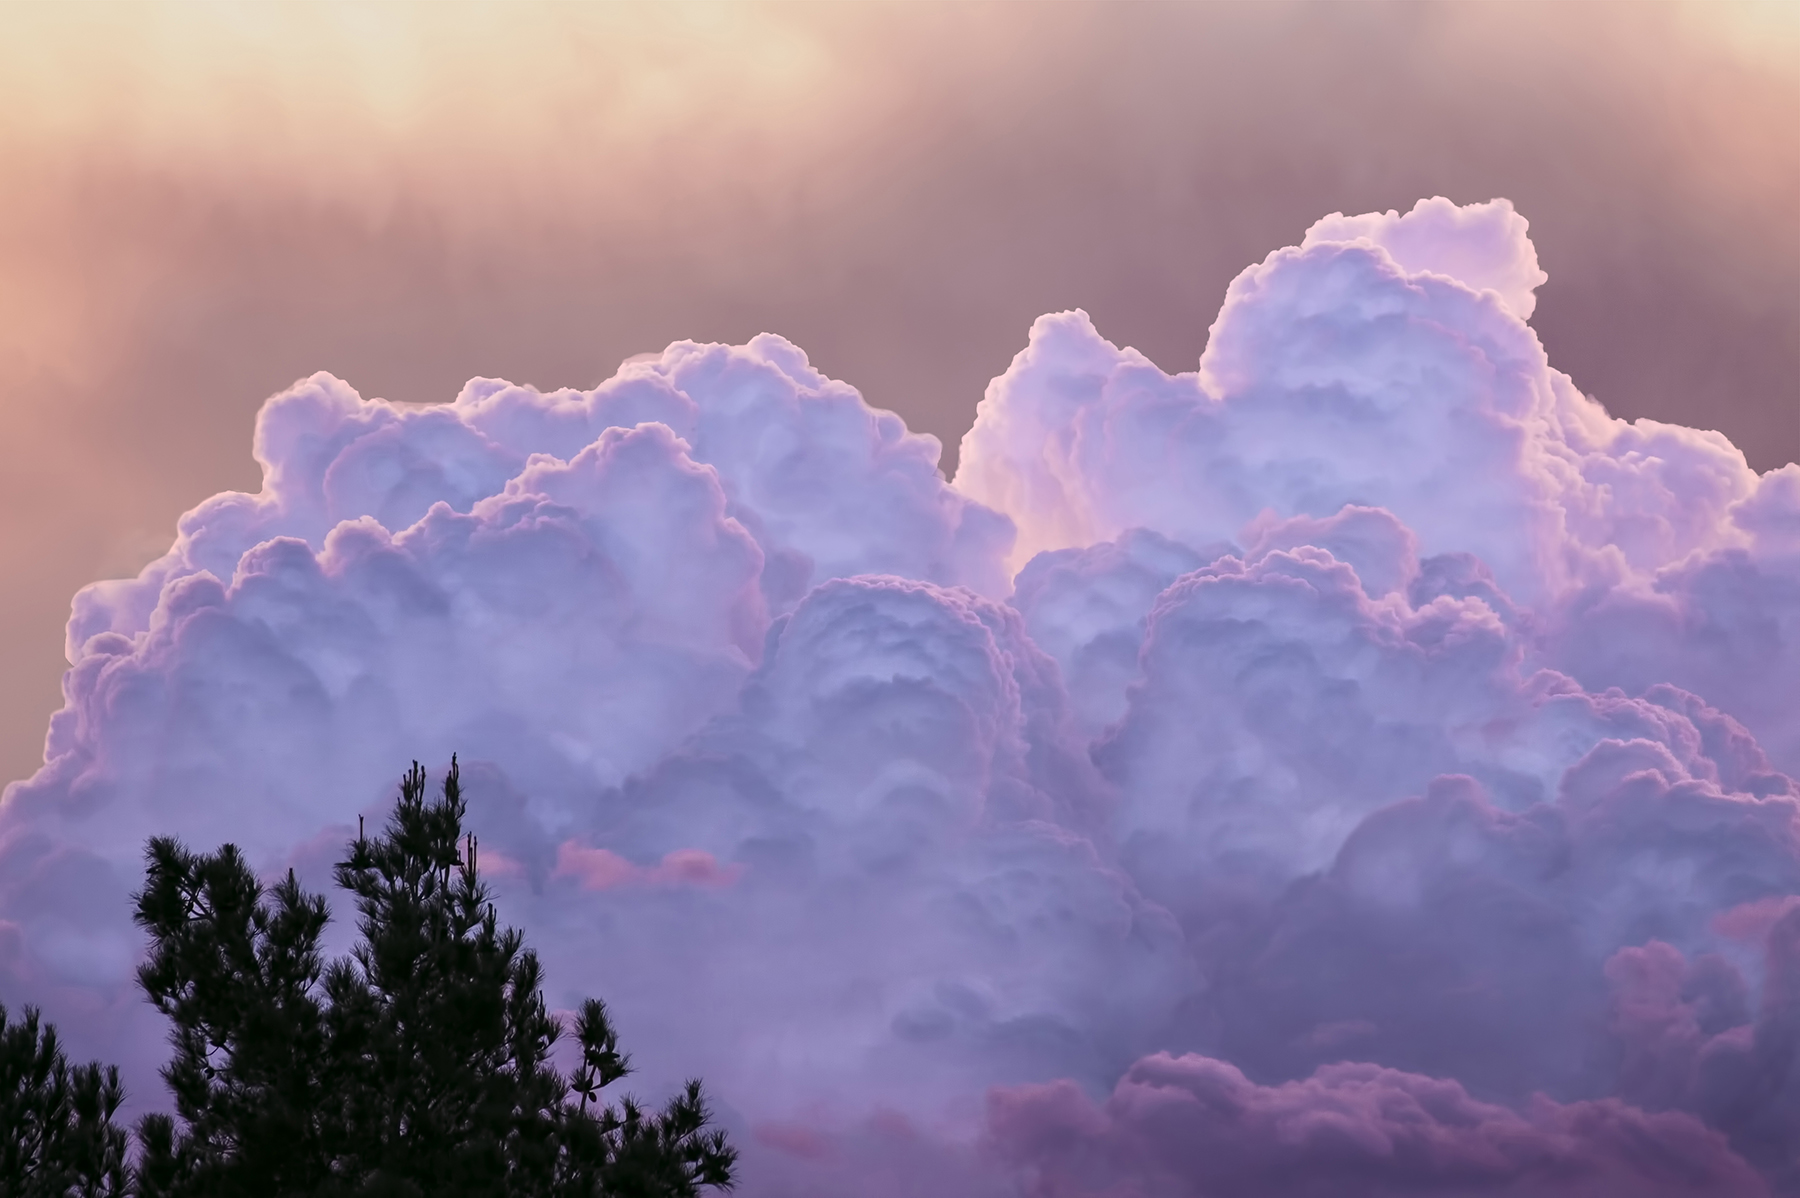 Mike Stephens: Cotton Candy Clouds